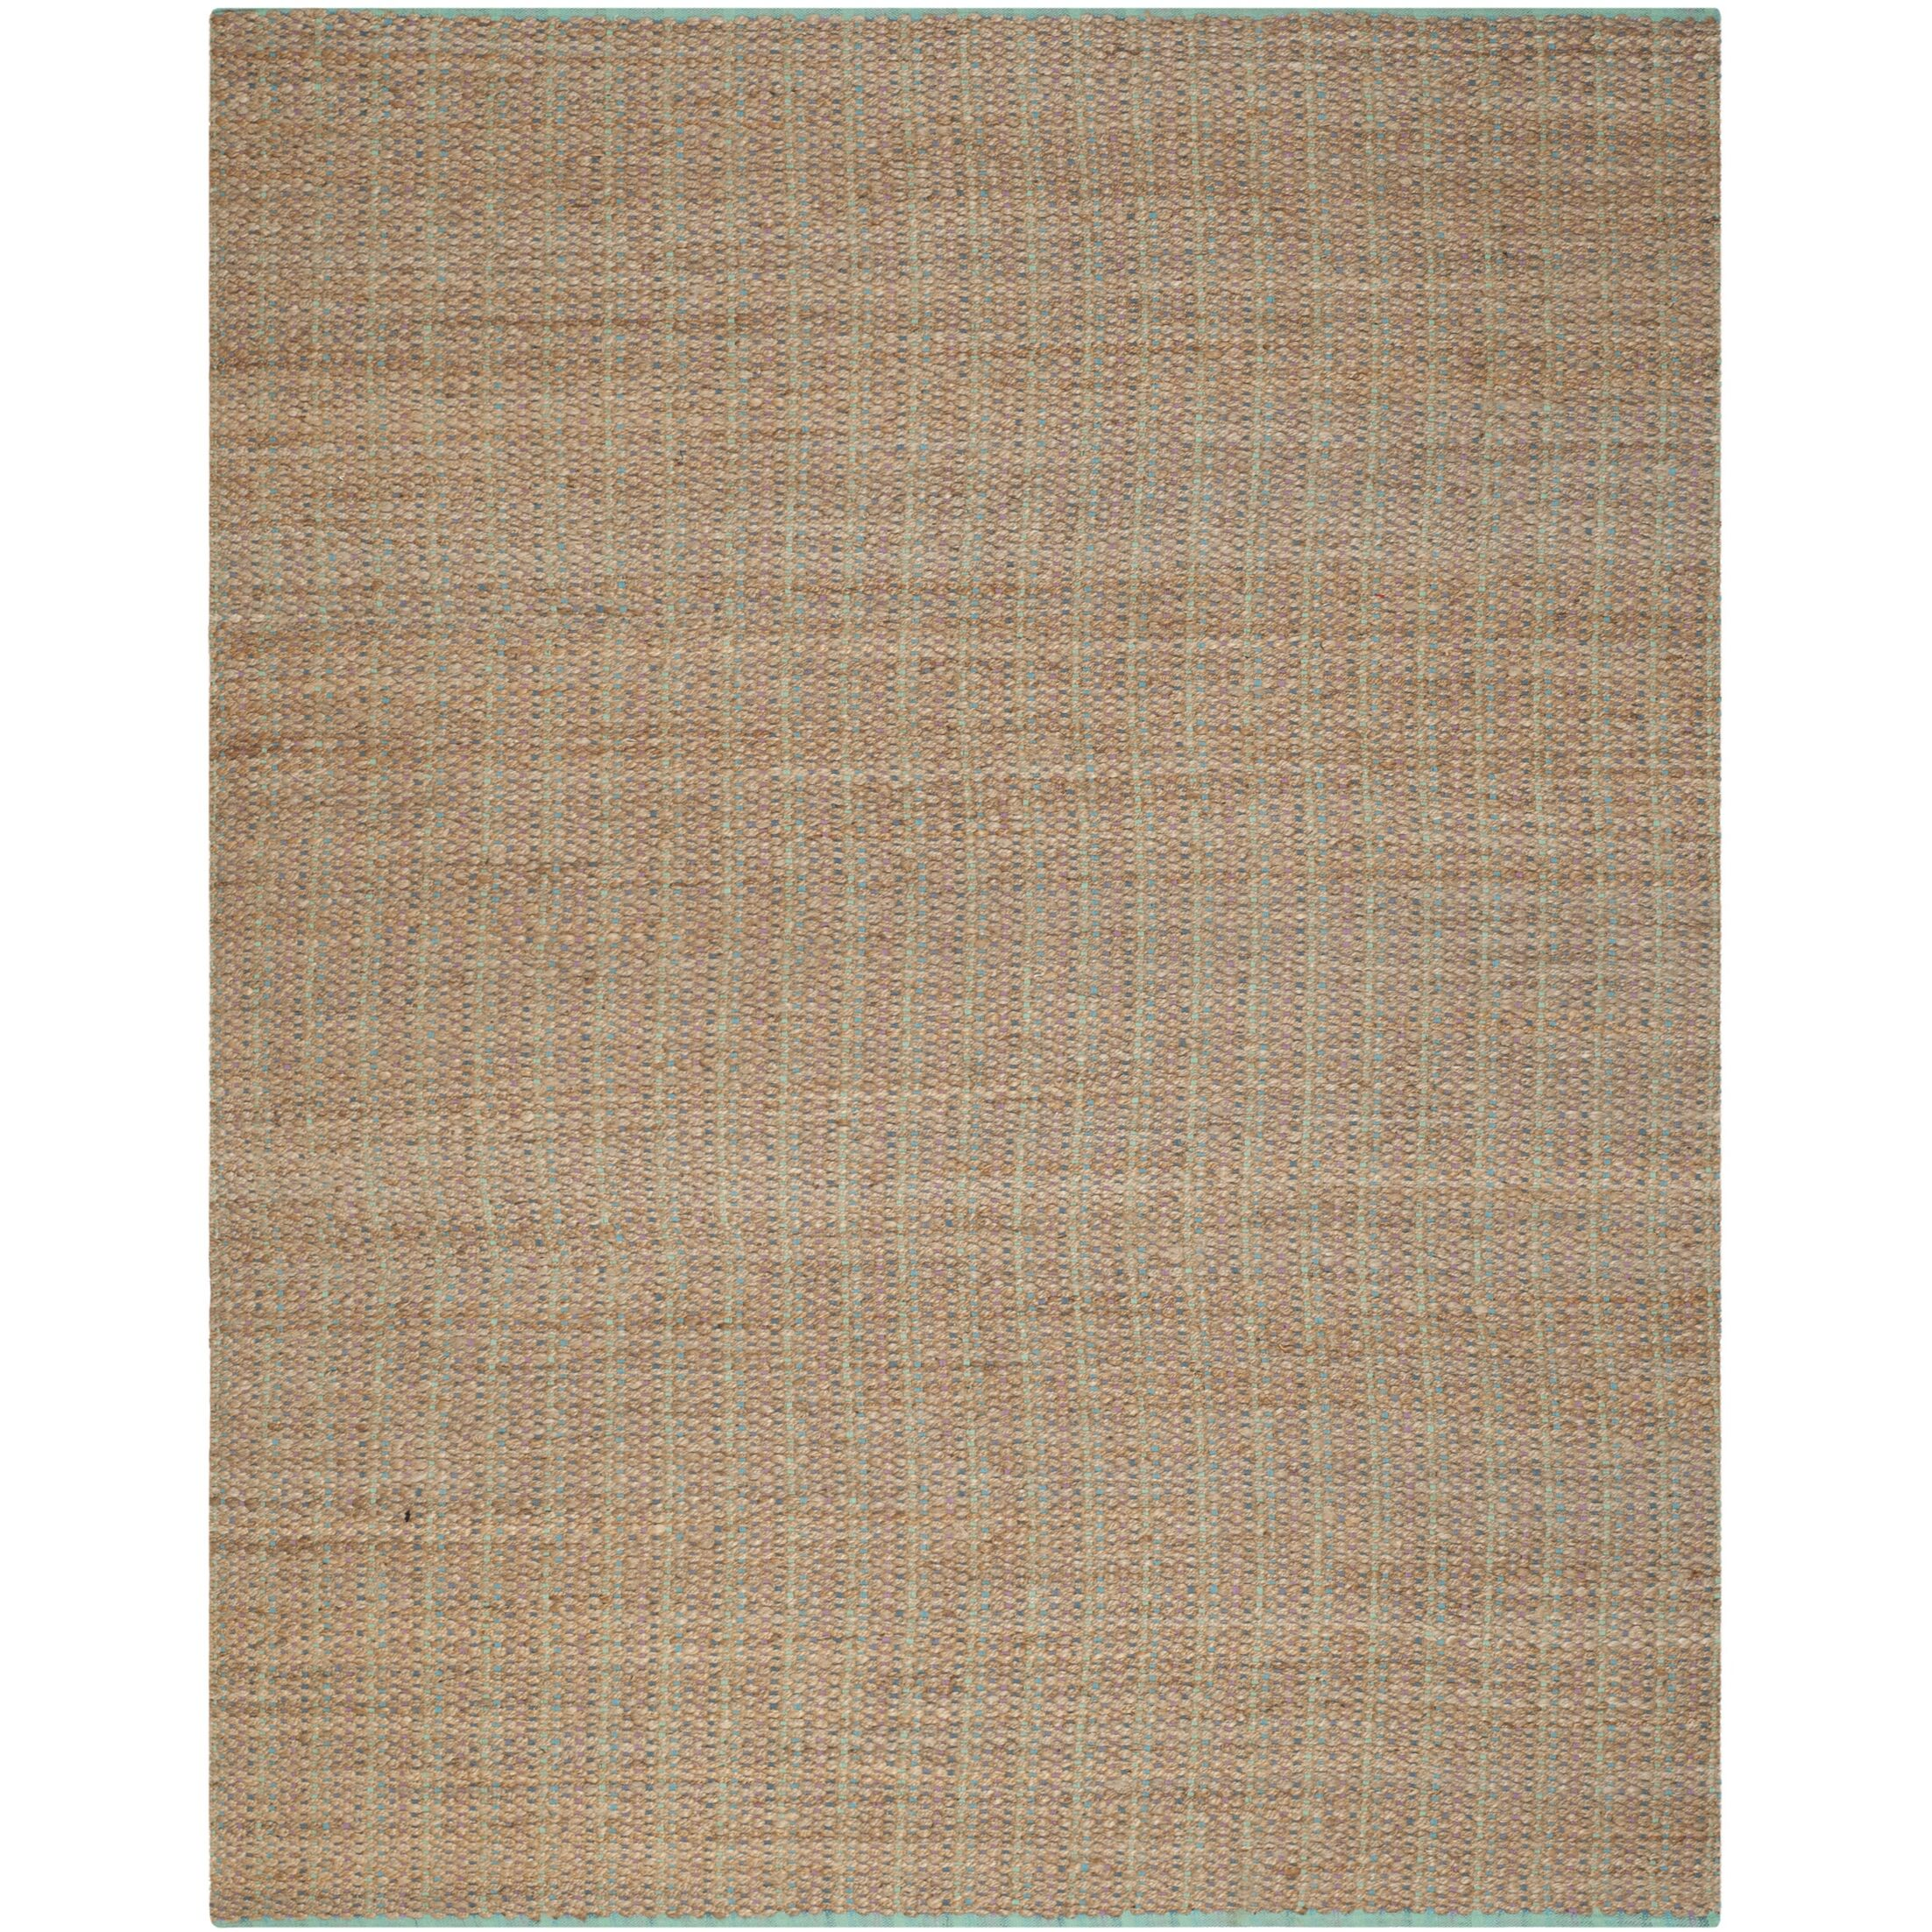 Abia Hand-Woven Cotton Tan Area Rug Rug Size: Rectangle 8' x 10'